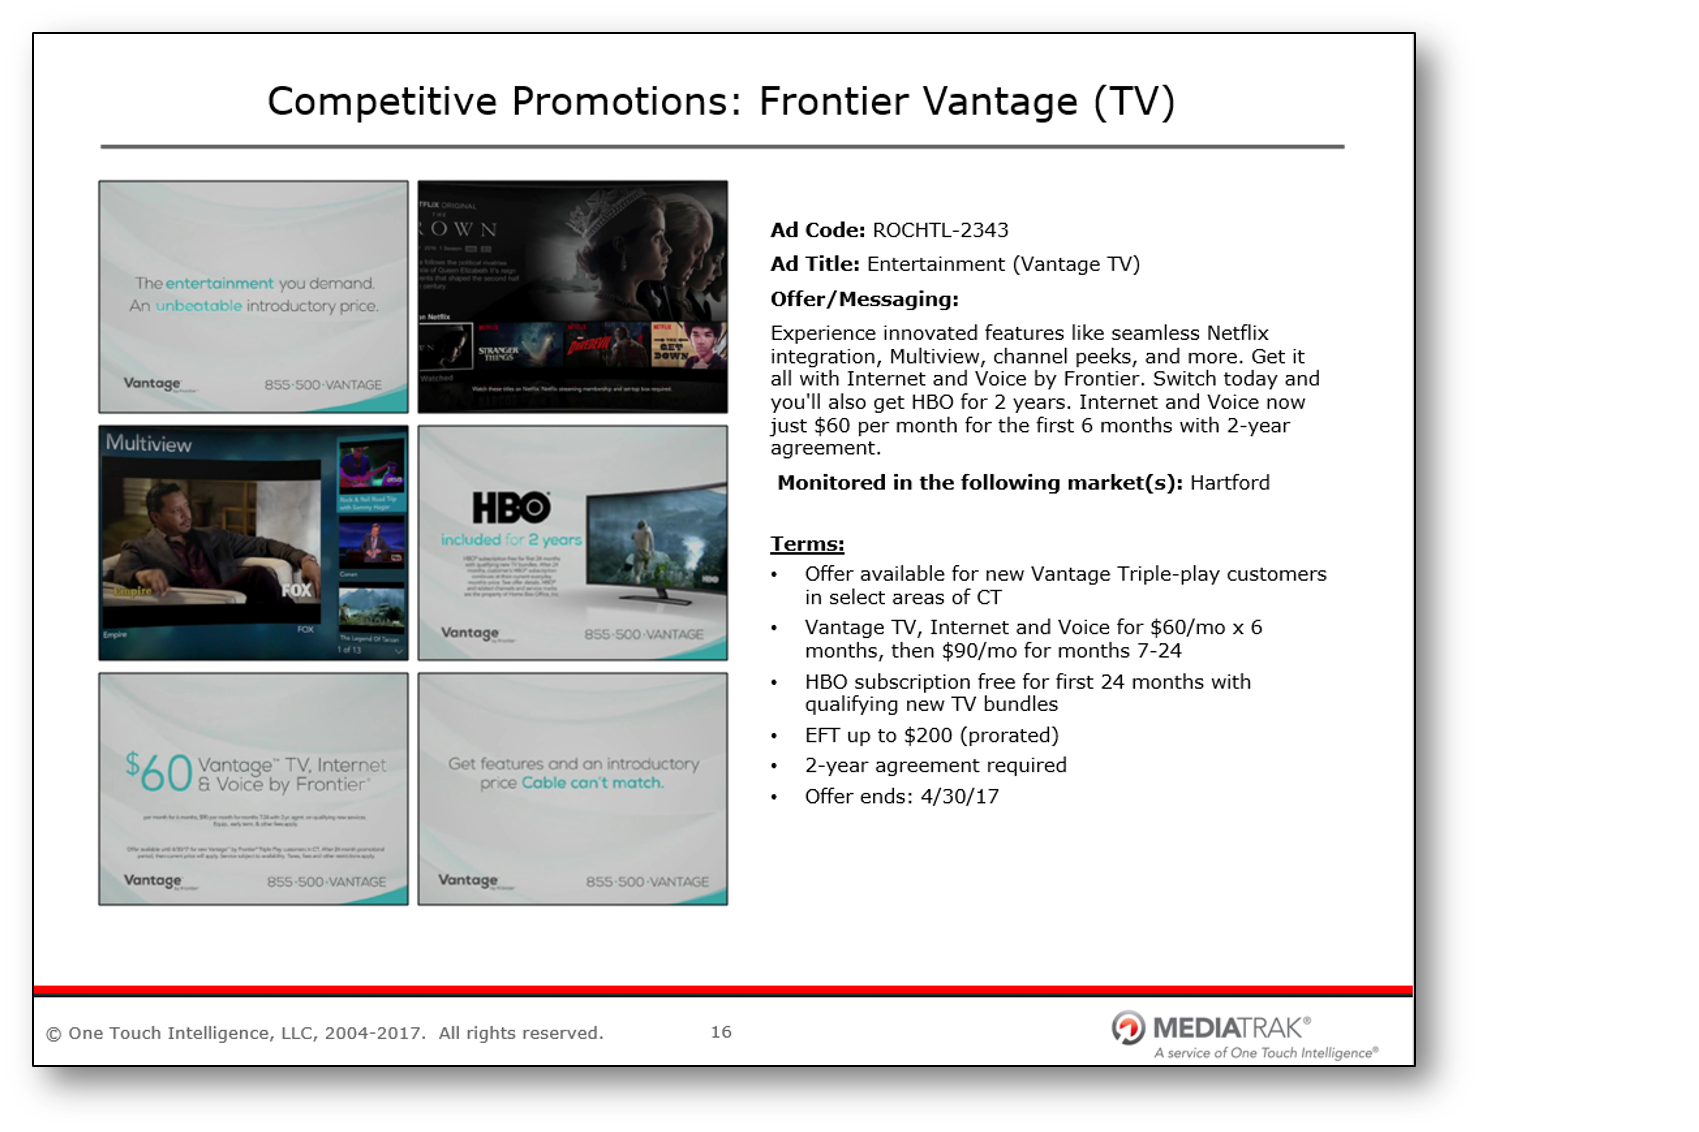 Promotional Reports - From summaries of key advertising messages to calendar views of ongoing promotions organized by competitor, OTI's Promotional Reports provide deep visibility into competitor marketing behaviors.